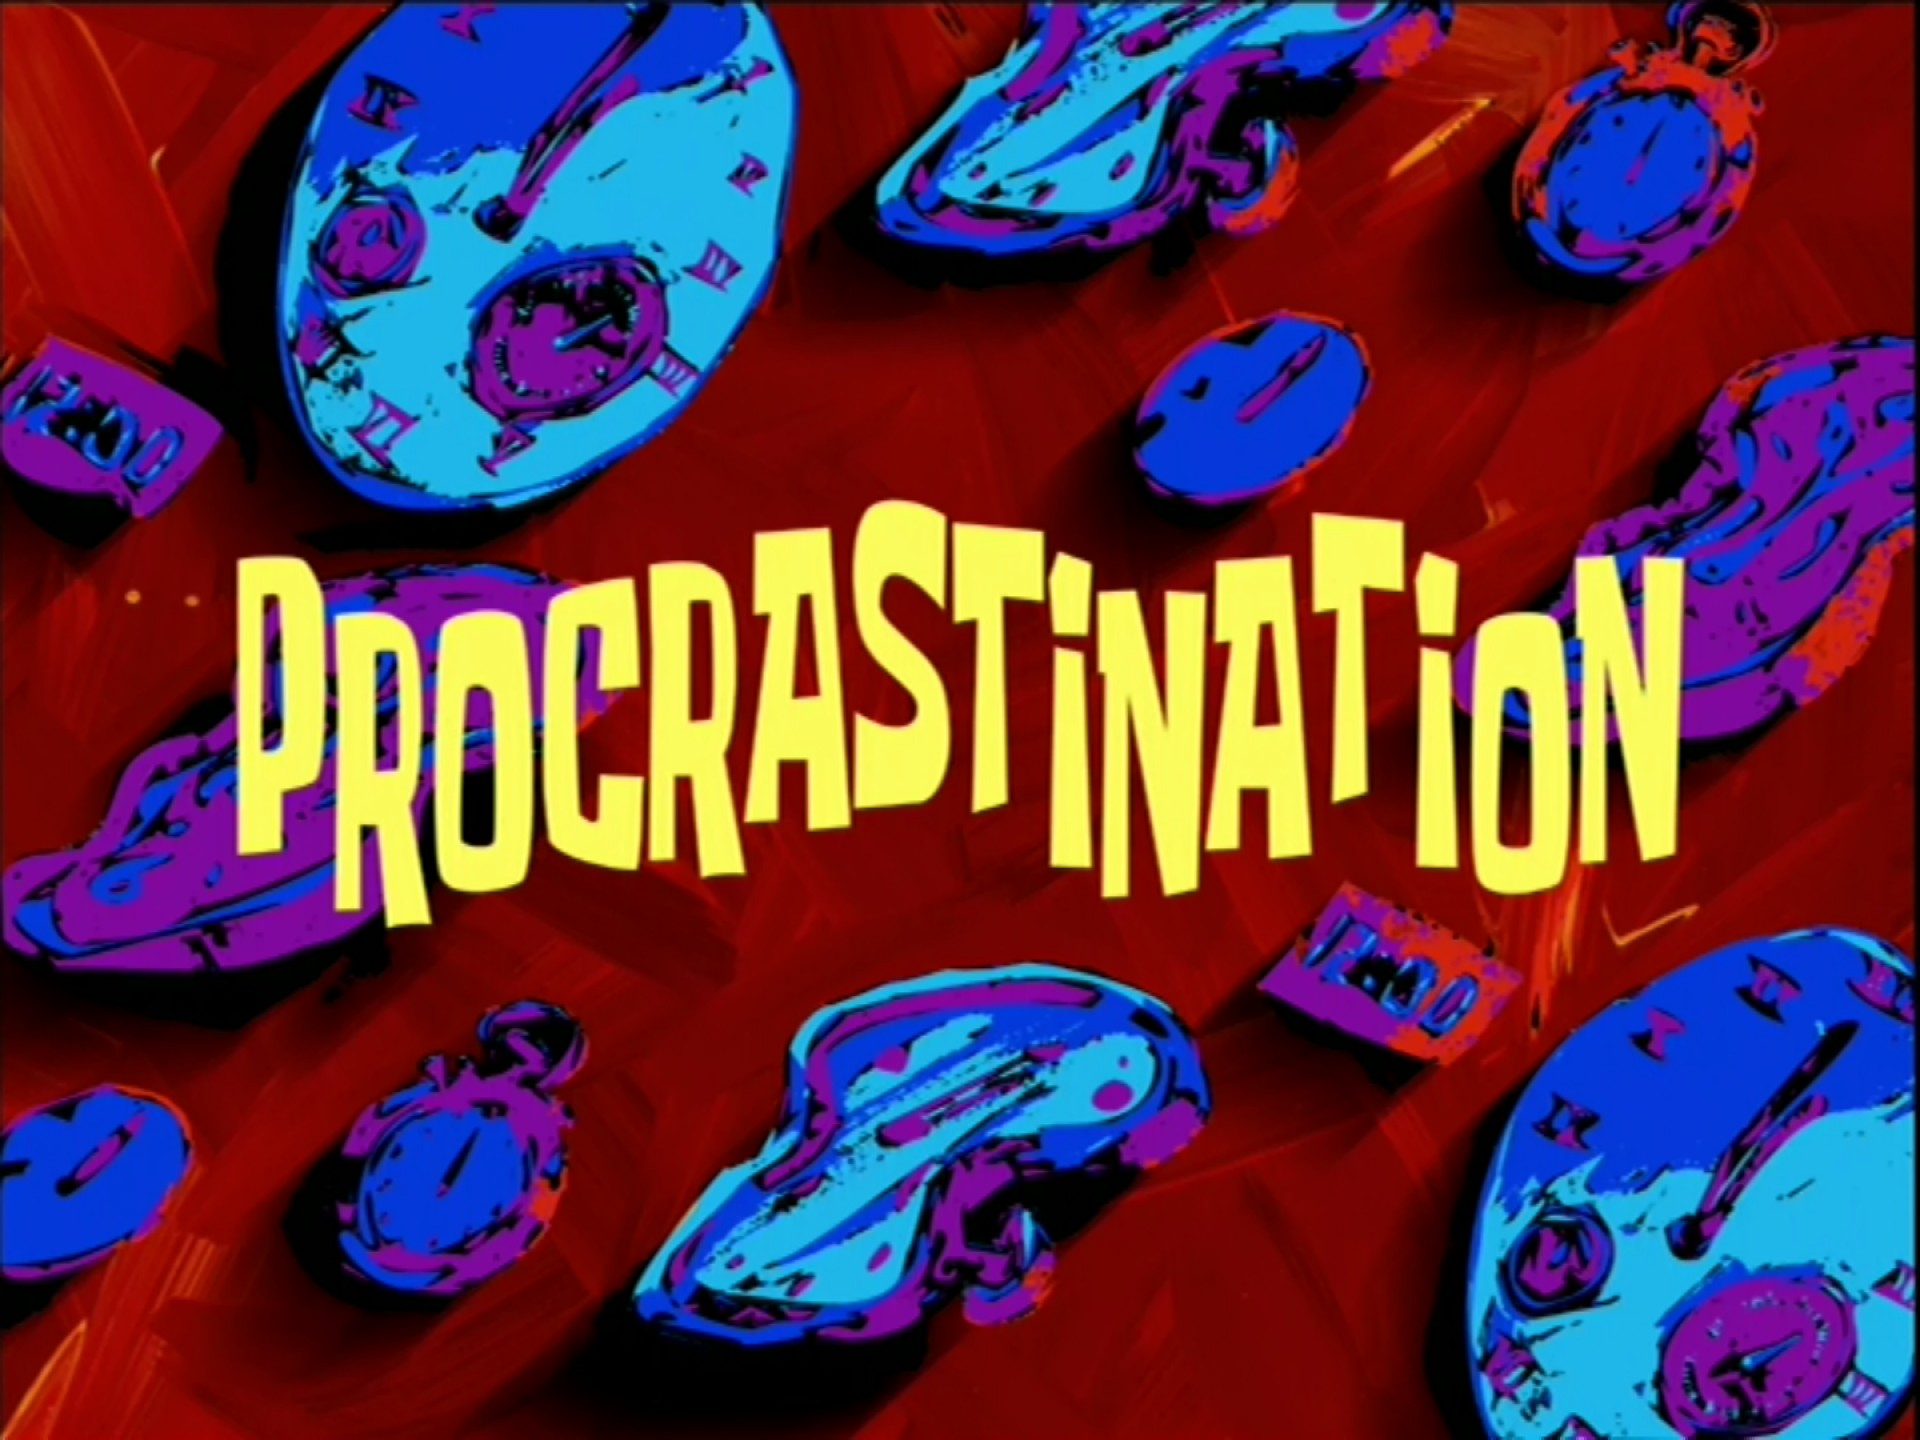 009 Procrastinationtranscript Encyclopedia Spongebobia Fandom Spongebob Writing Essay The Latestcb201806220 Gif Font For Hours Meme Rap Surprising House 1920